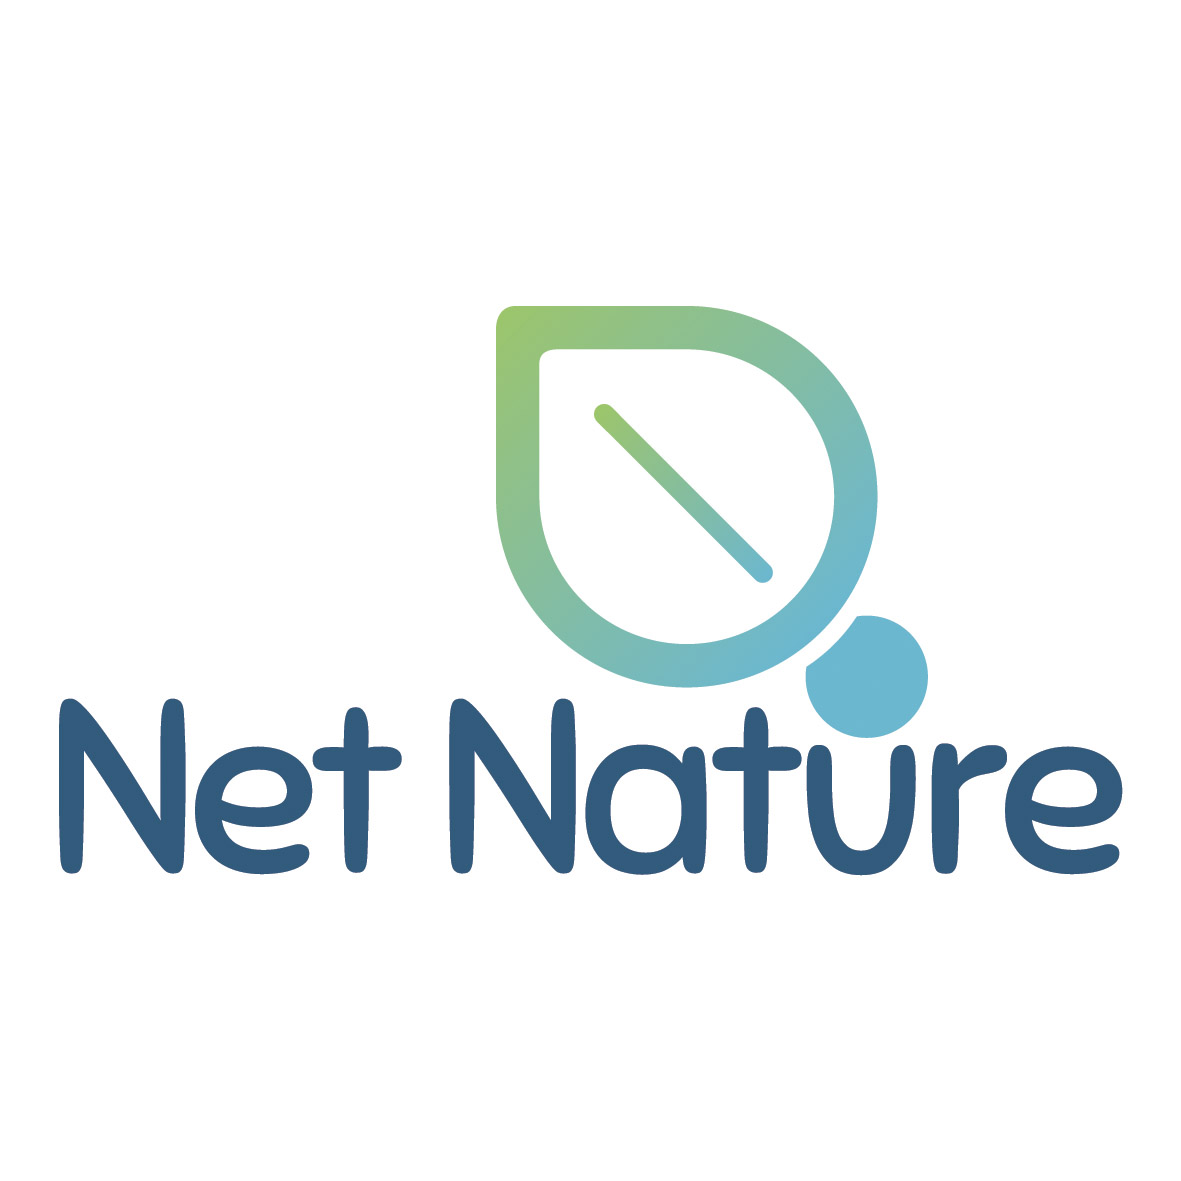 NetNature